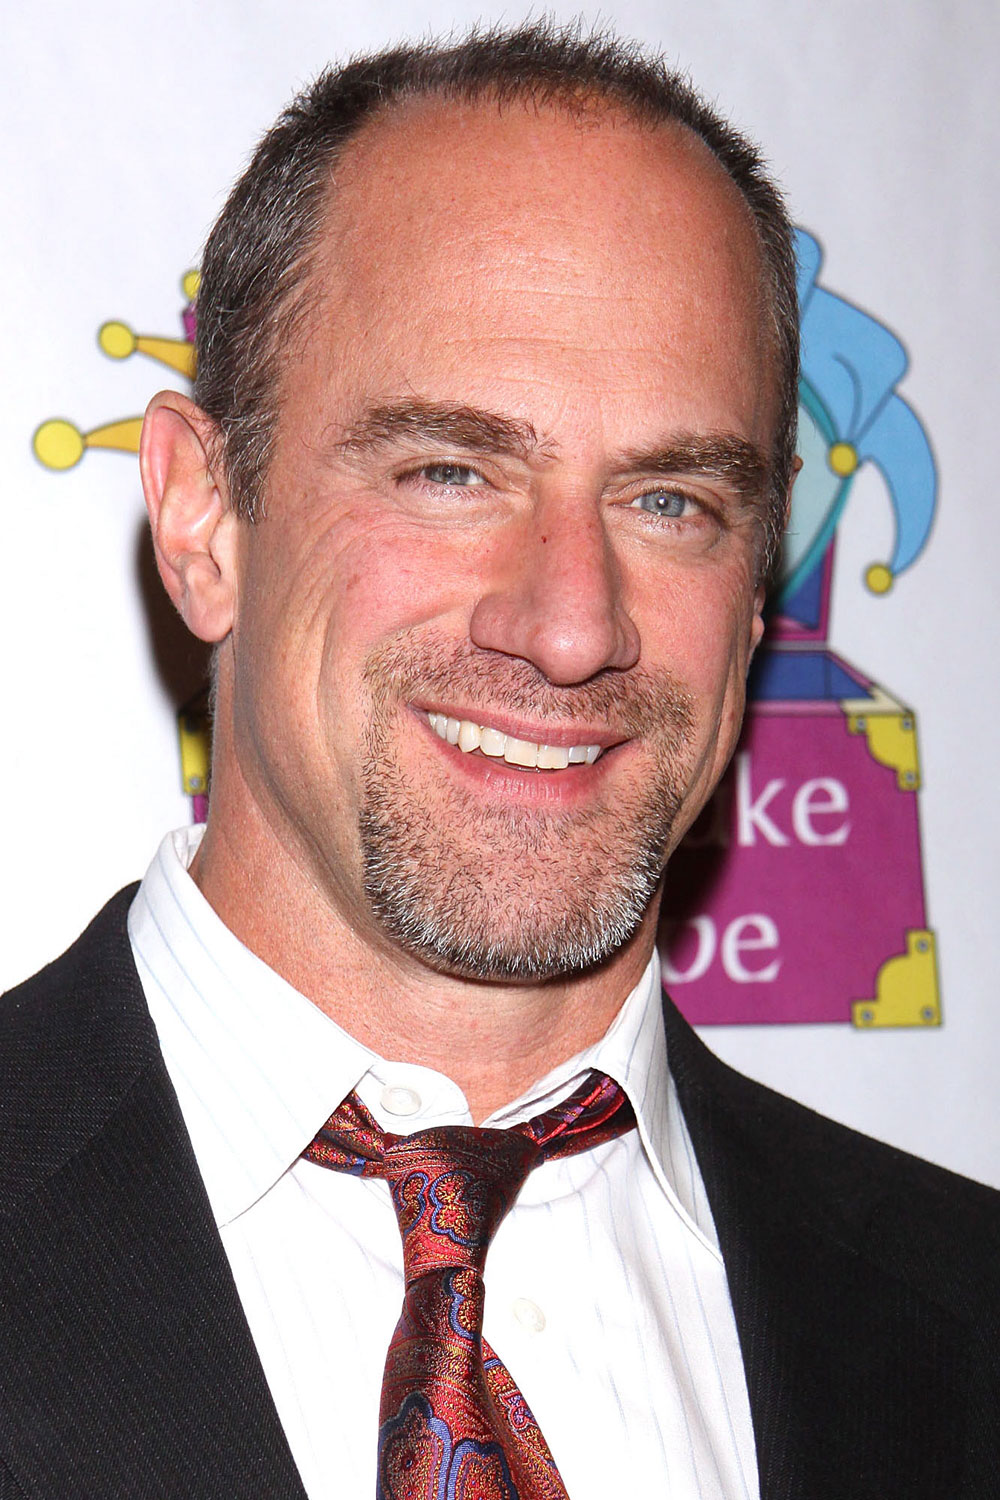 christopher meloni scrubschristopher meloni fear and loathing, christopher meloni height, christopher meloni true blood, christopher meloni wife, christopher meloni man of steel, christopher meloni law and order, christopher meloni elias koteas, christopher meloni sinemalar, christopher meloni as chris keller, christopher meloni call of duty, christopher meloni scrubs, christopher meloni instagram, christopher meloni, christopher meloni svu, christopher meloni black ops 3, christopher maloney x factor, christopher meloni twitter, christopher meloni actor, christopher meloni net worth, christopher meloni imdb